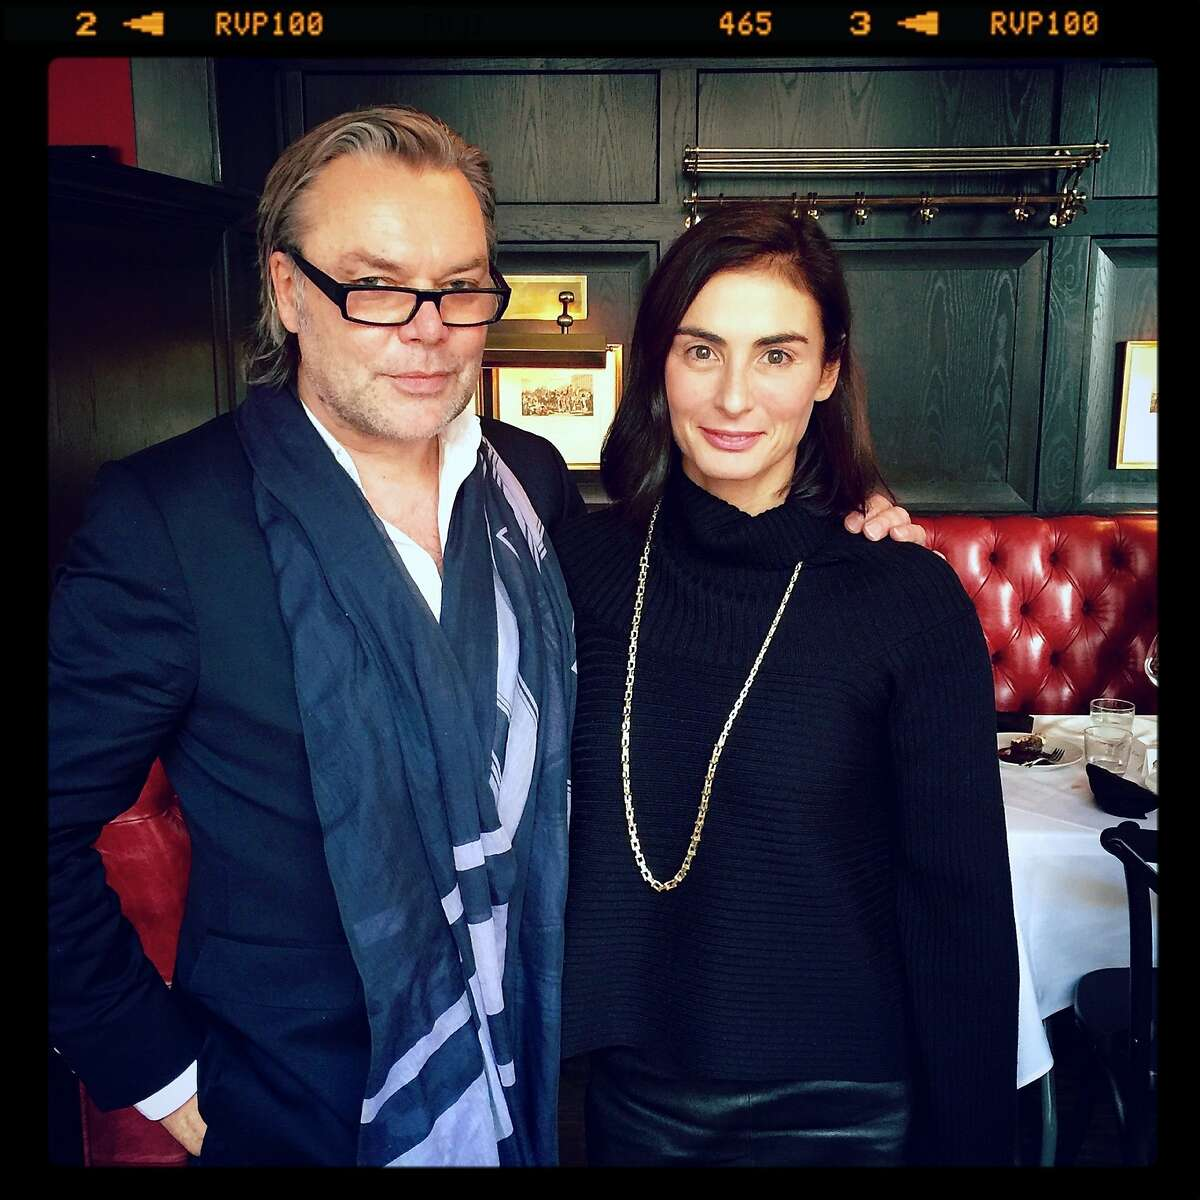 """Fashion illustrator David Downton with new Tiffany Design Director Francesca Amfitheatrof (a Vanity Fair Best Dressed Lister) at The Cavalier for a Denise Hale lunch celebrating Downton's new book, """"Portraits of the World's Most Stylish Women."""" Oct 2015."""